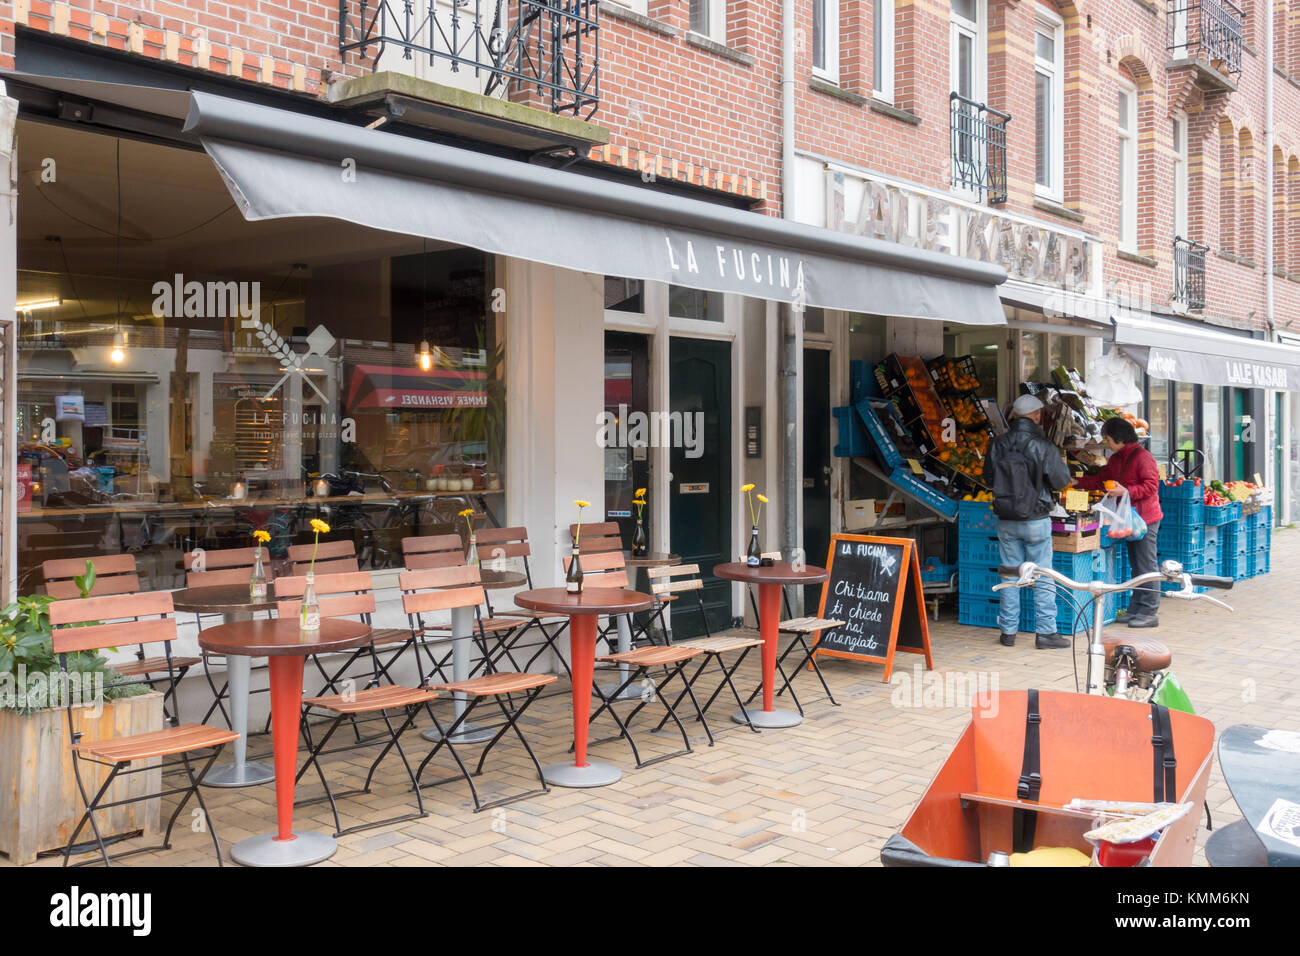 Exterior Of La Fucina Italian Restaurant At Javastraat Amsterdam Stock Photo Alamy